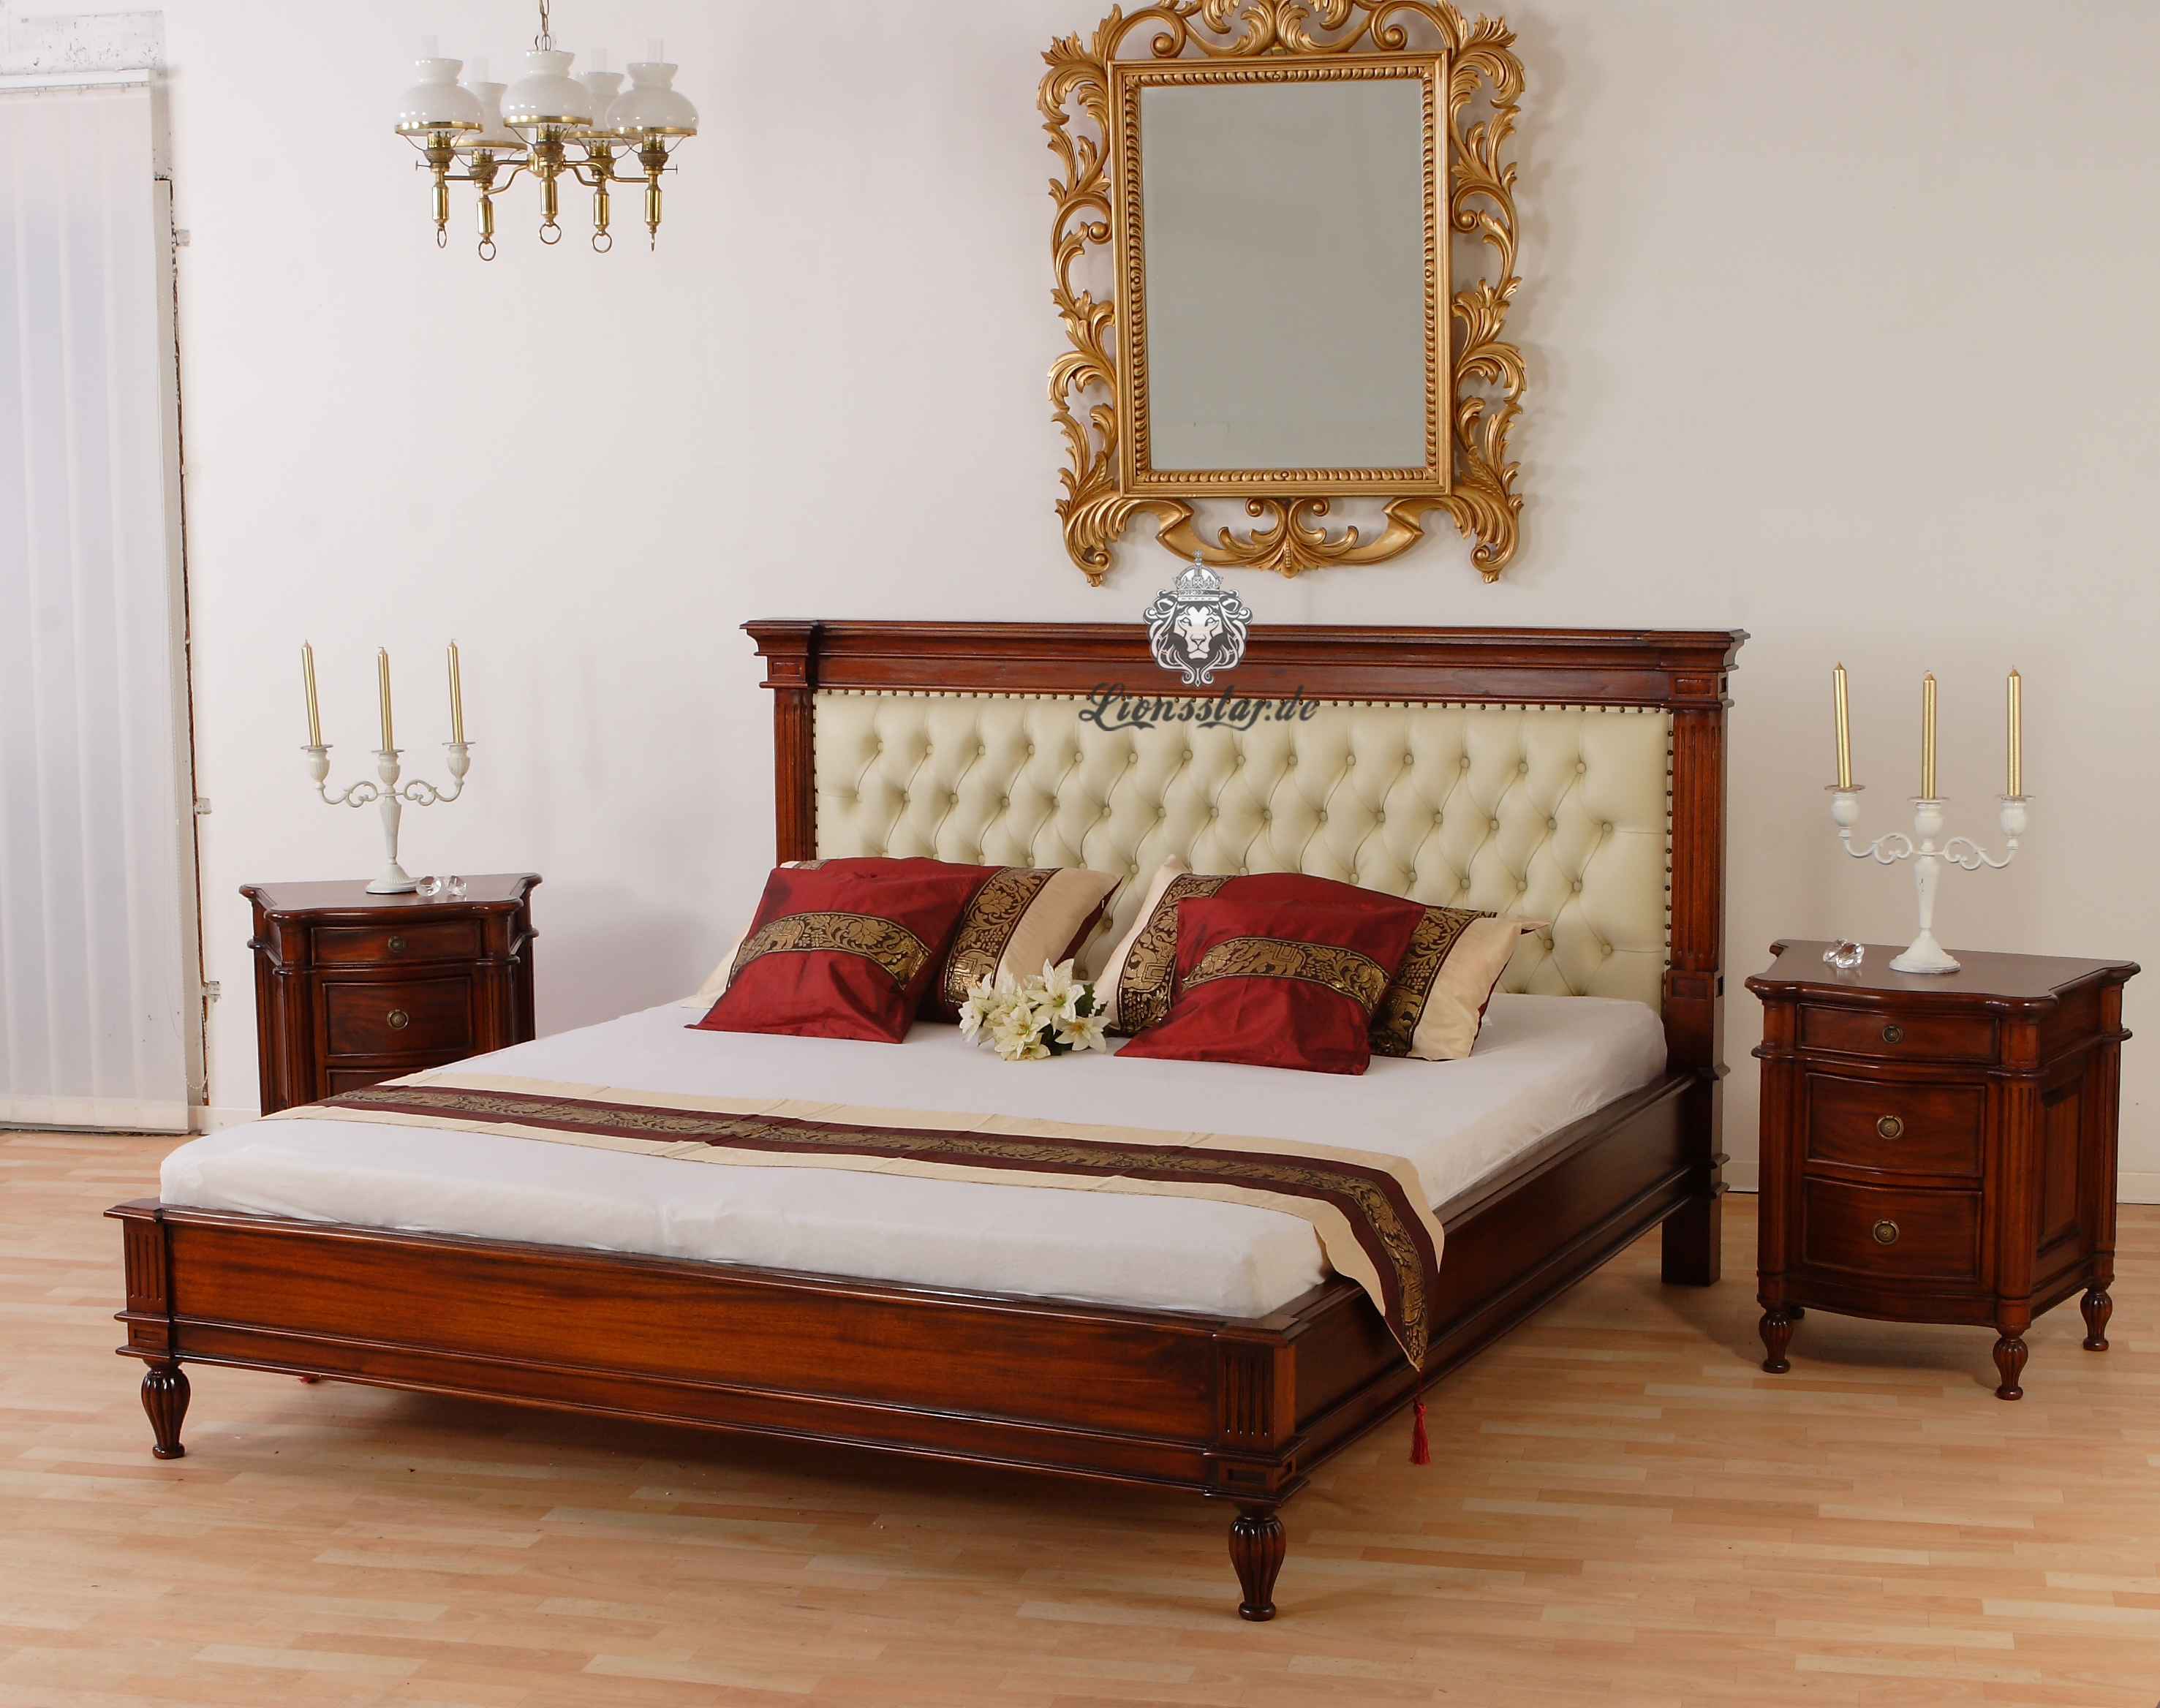 louis betten lionsstar gmbh. Black Bedroom Furniture Sets. Home Design Ideas